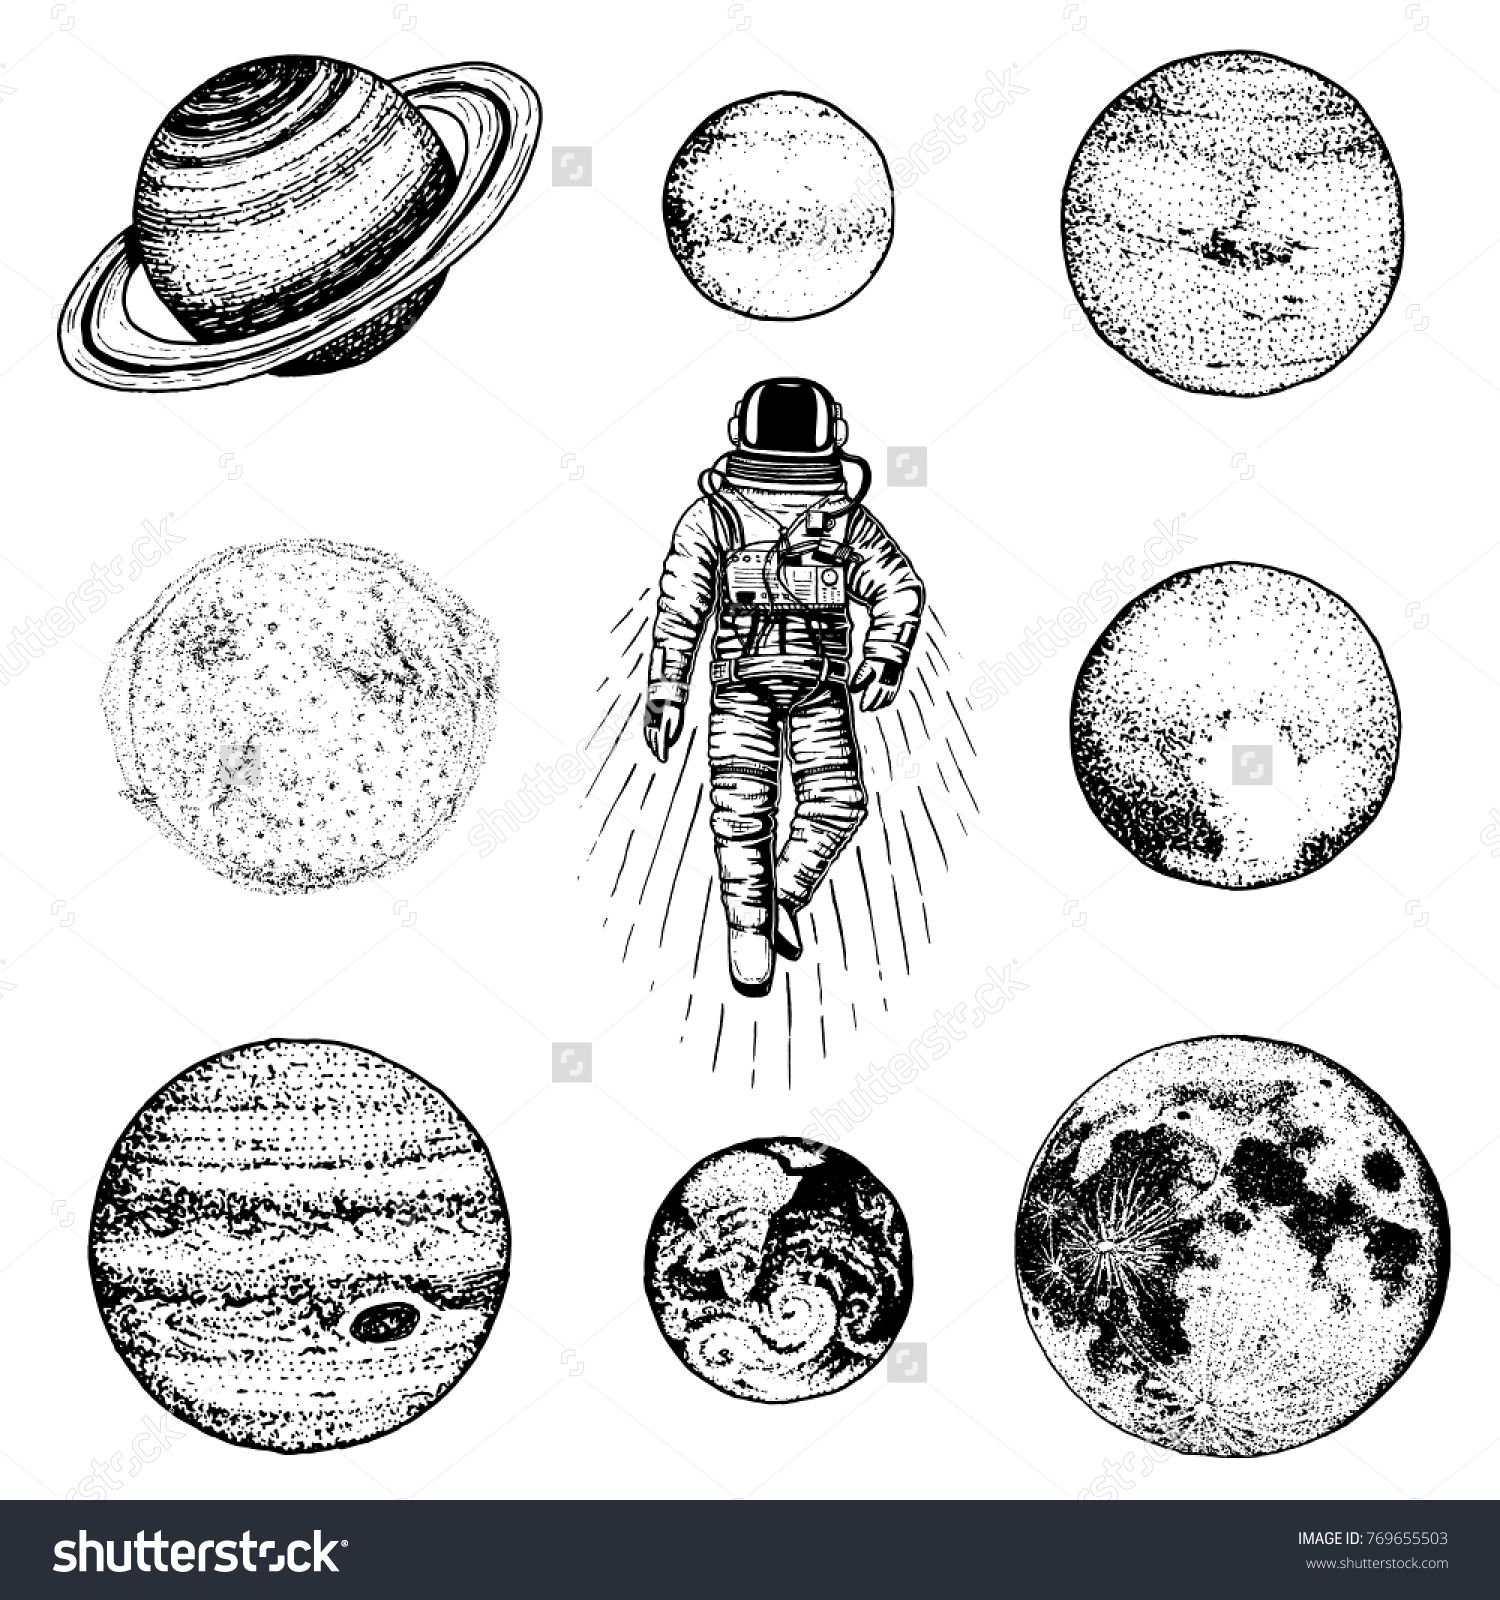 Astronaut Spaceman Planets In Solar System Astronomical Galaxy Space Cosmonaut Explore Adventure Engrave Planet Drawing Elephant Sketch Solar System Tattoo